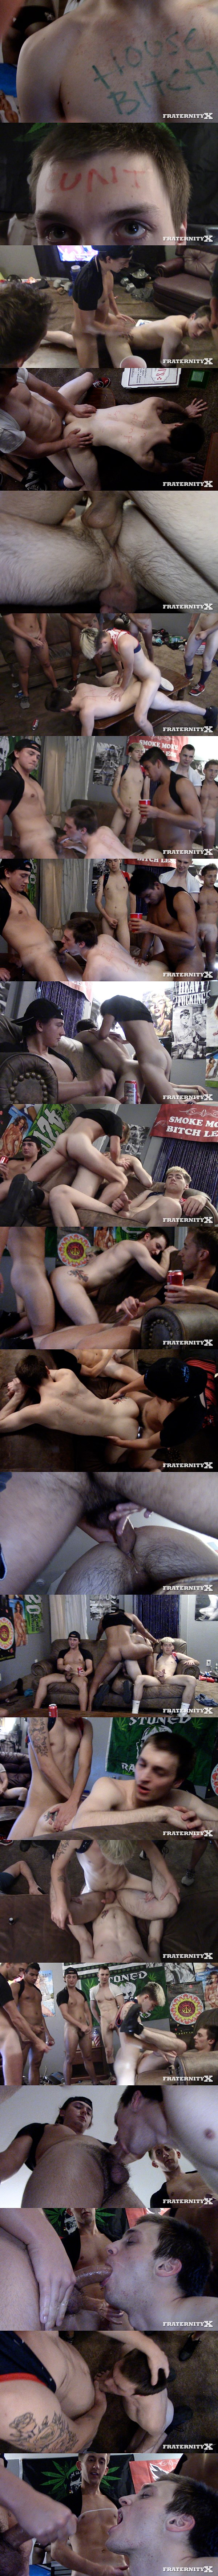 Fraternityx - frat dudes Chase Daniels, Jay Seabrook, Kade Rivers, Levi Whitman and Masyn Thorne gangbang and bareback Quincy Green's virgin ass before they give Quincy big facials in House Bitch 02